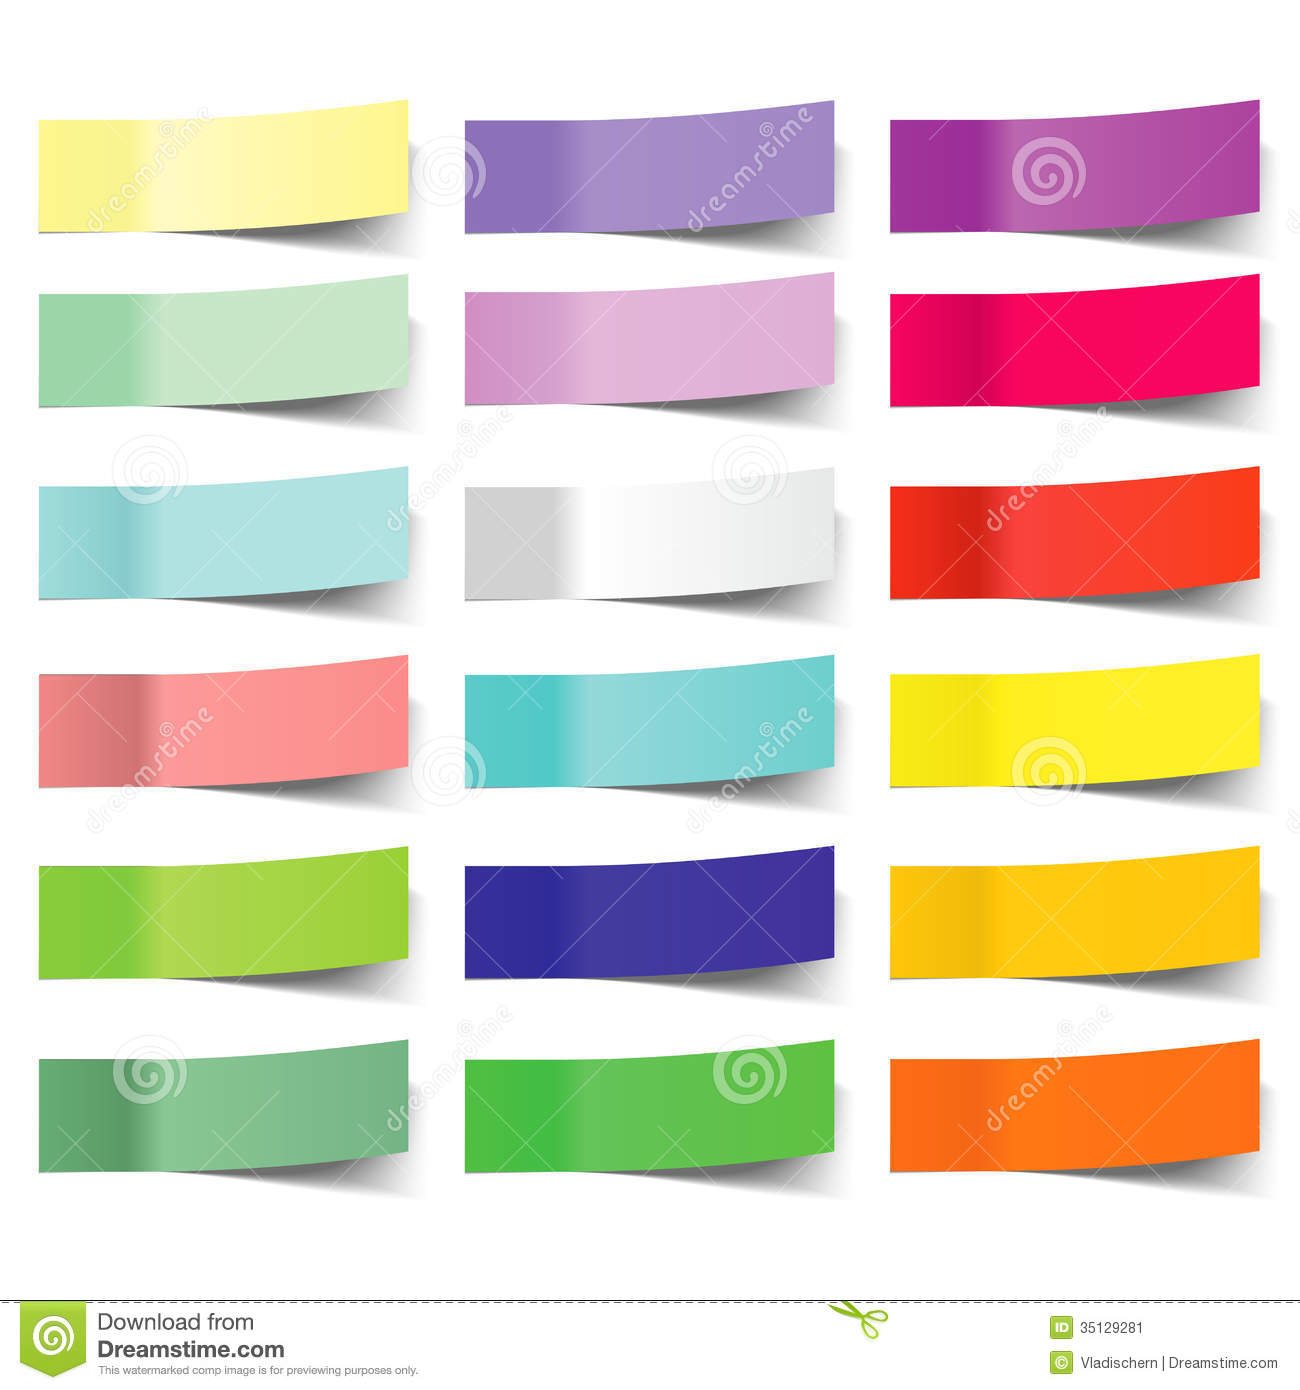 Free vector graphic sticky note note info paper free image on - Royalty Free Stock Photo